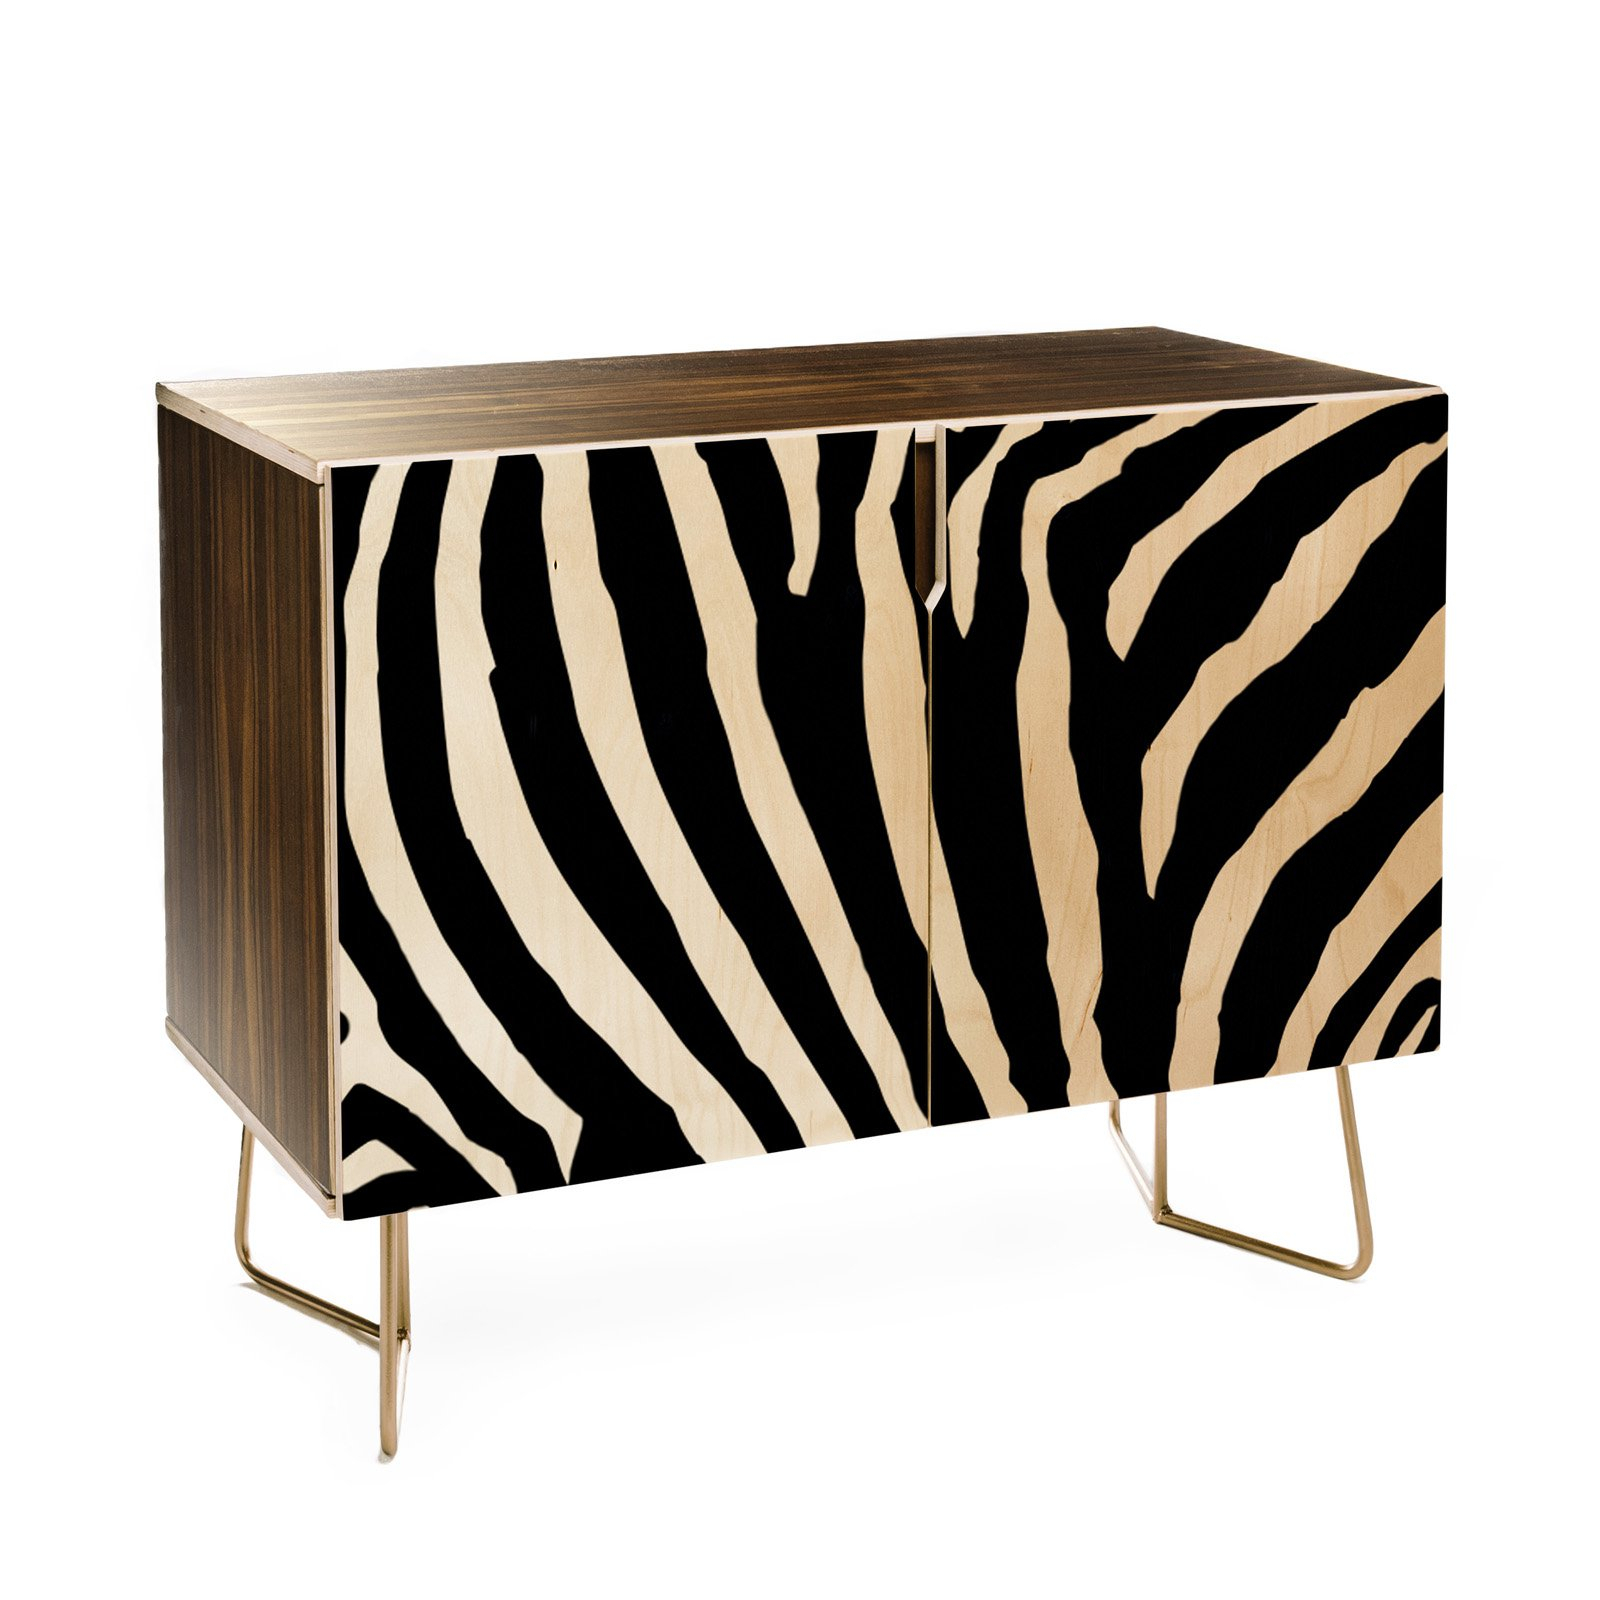 Deny Designs Natalie Baca Zebra Stripes Credenza | Products Throughout Beach Stripes Credenzas (View 14 of 30)